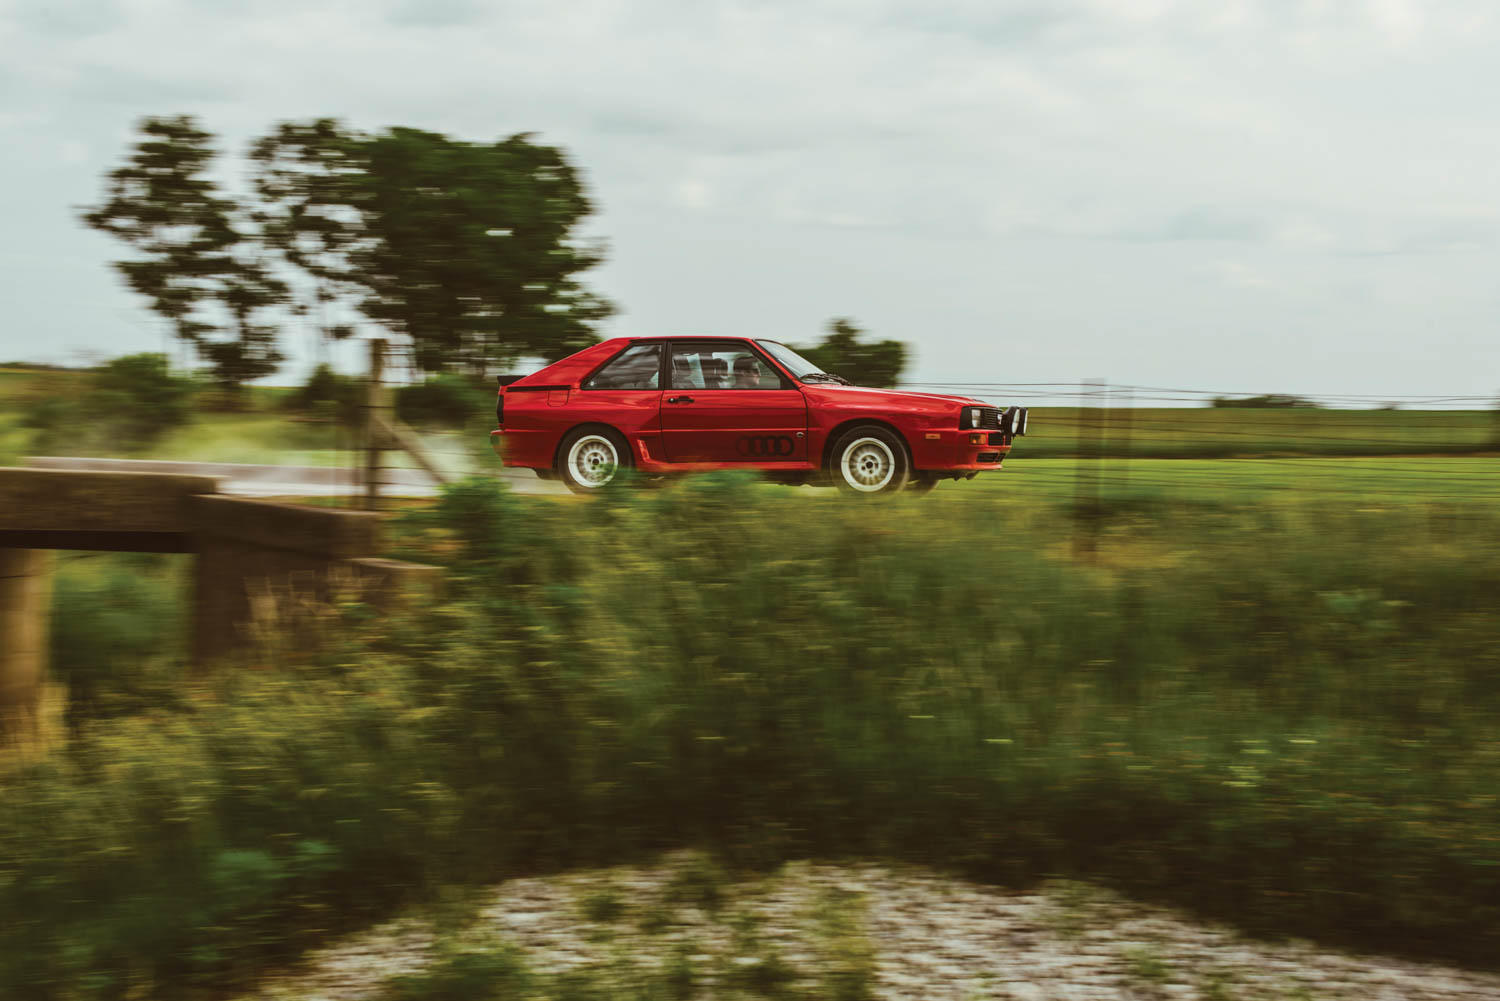 Kettler let me take the hallowed Sport Quattro from its parking place in a barn straight onto winding country roads. Turbo lag is immense, but once the boost is on, it feels like you're on the business end of a torpedo.